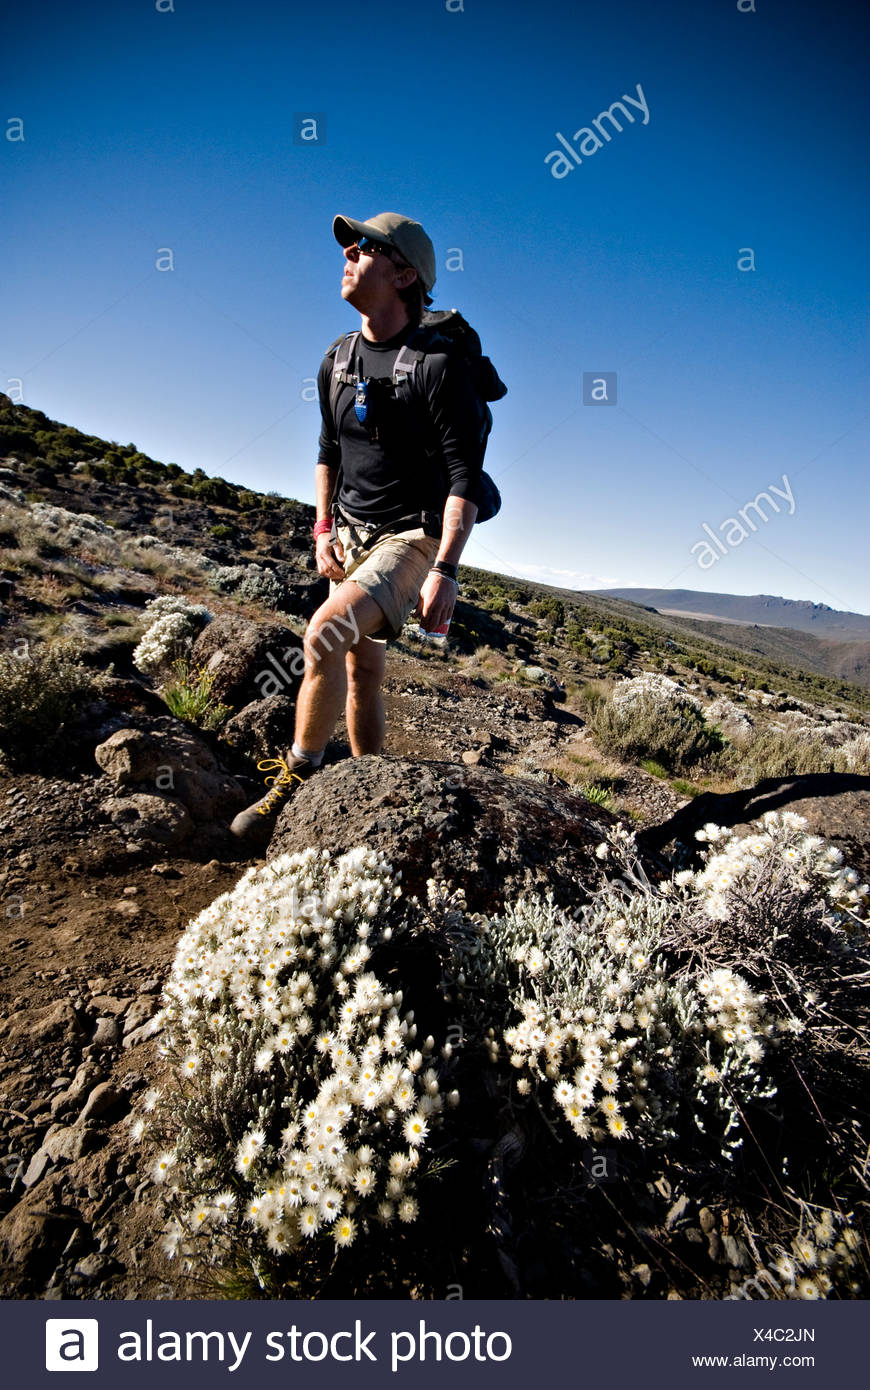 A young man hikes near alpine flowers in the high desert below Mt. Kilimanjaro. - Stock Image